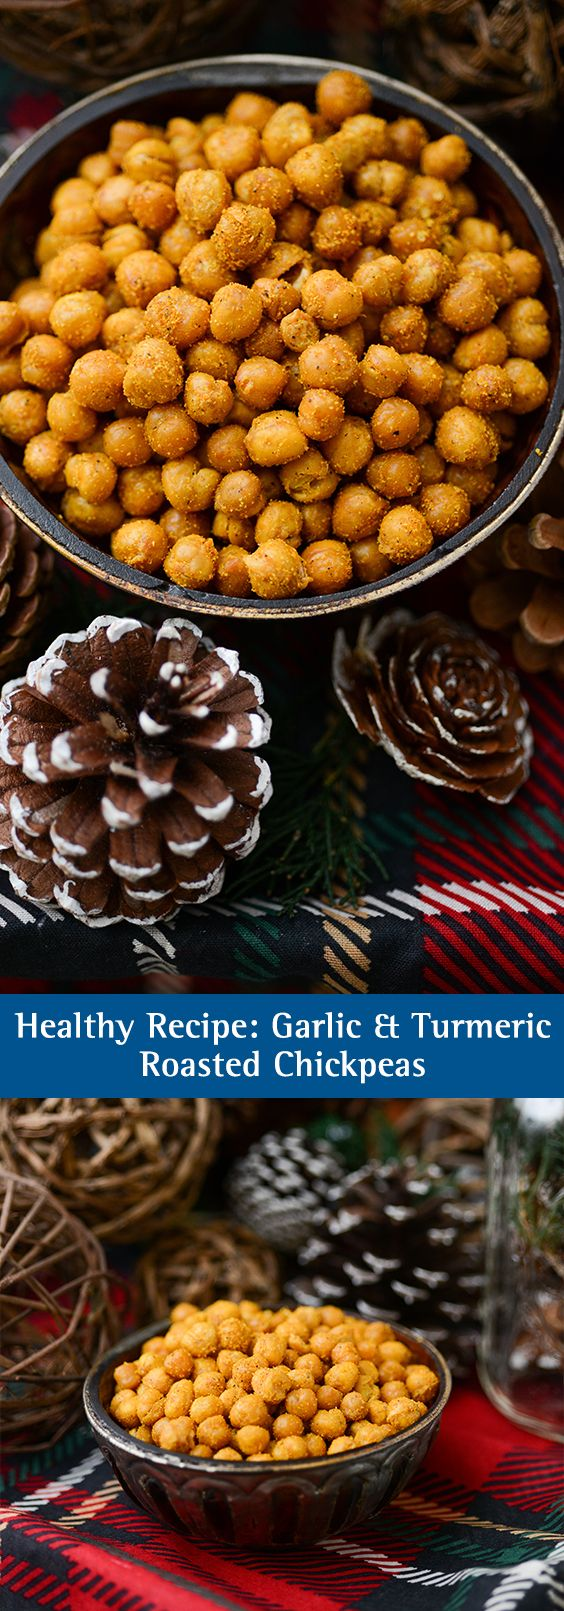 Healthy Vegetarian Snack Recipe: Garlic and Turmeric Roasted Chickpeas. Whether you need an afternoon pick-me-up at work or are out running errands, these spicy roasted chickpeas make for the perfect snack to curb your hunger. This healthy recipe is high in fiber and protein but low in saturated fat, and is the perfect alternative to other salty, fatty snack options.